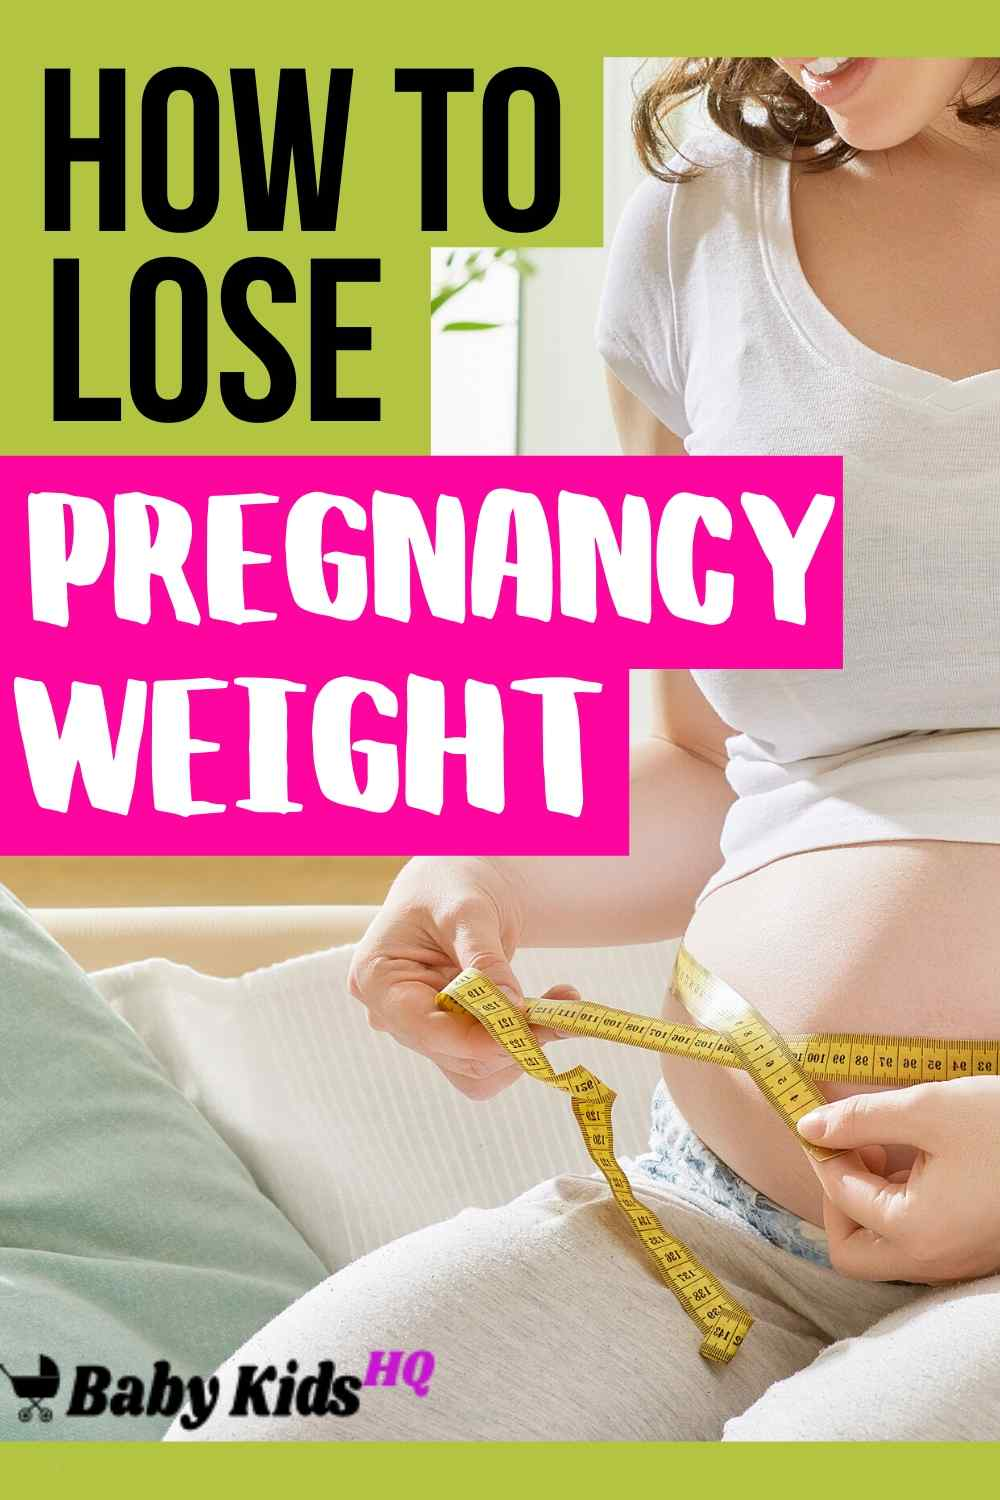 For many women, the need to better understand how to lose pregnancy weight is essential for getting back to a comfortable and manageable weight that makes them feel and look their absolute best.#pregnancytips #newmoms #weightloss